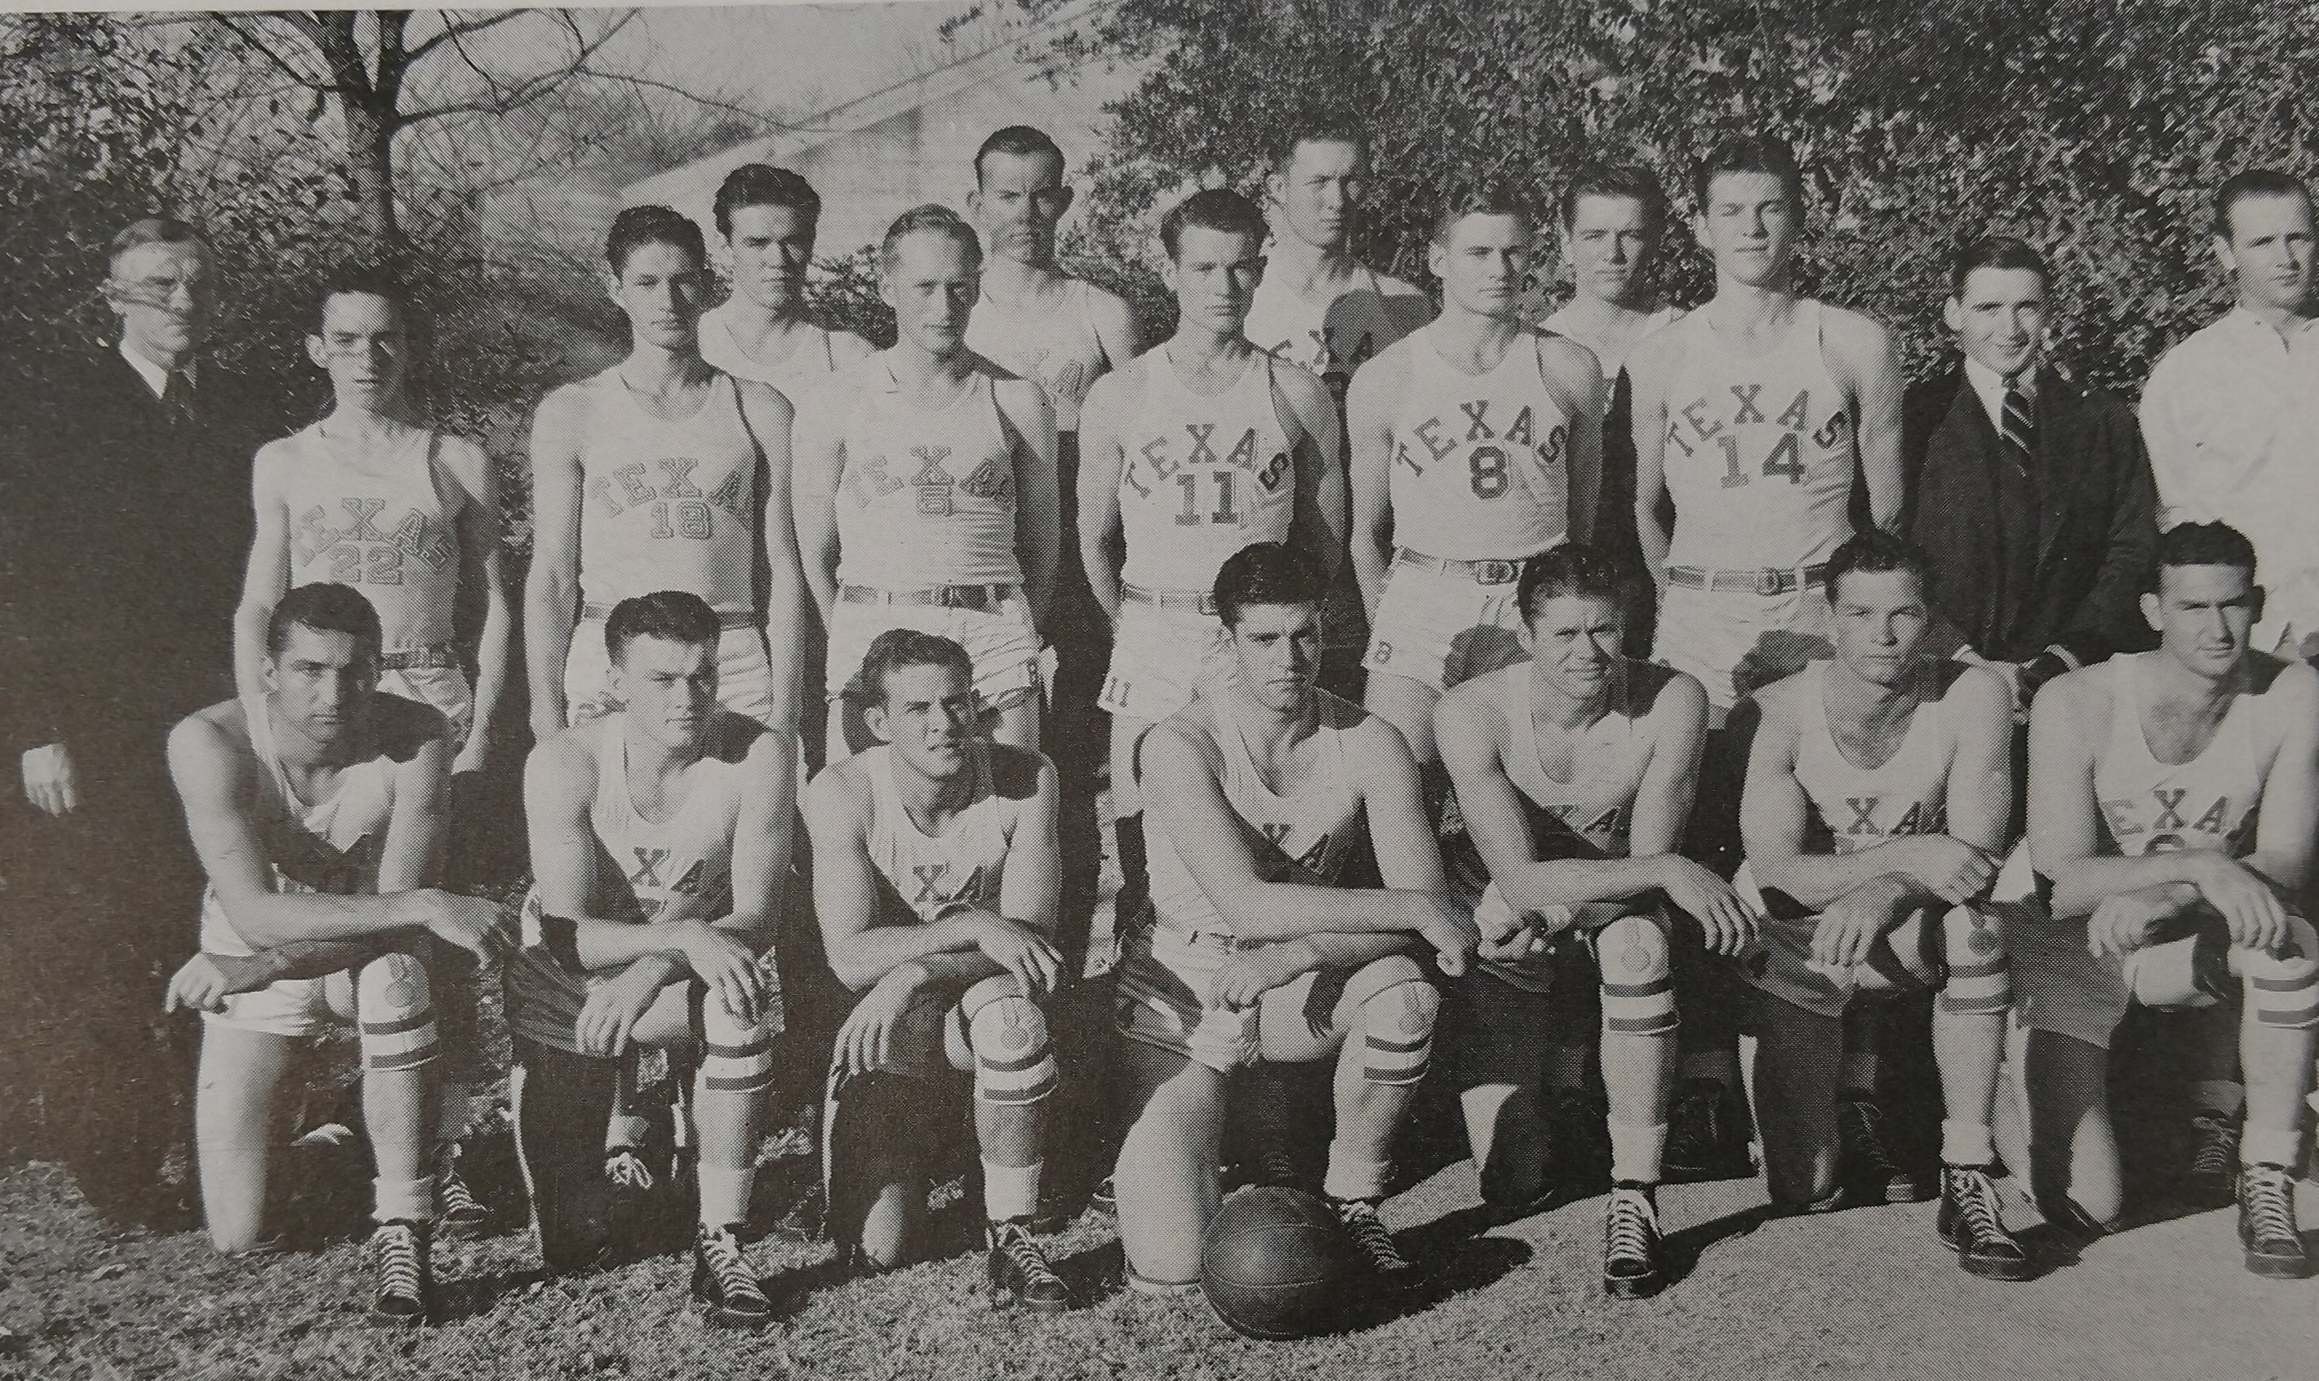 Bottom- Spears, Nelms, Moers, Tate, Finley, Wiggins, Roach second row Kelley, Greer, King, Simmons, Hull, Moore, Granville, Schwartz, Gray third row Garrison, Anderson, Houpt, Cooley